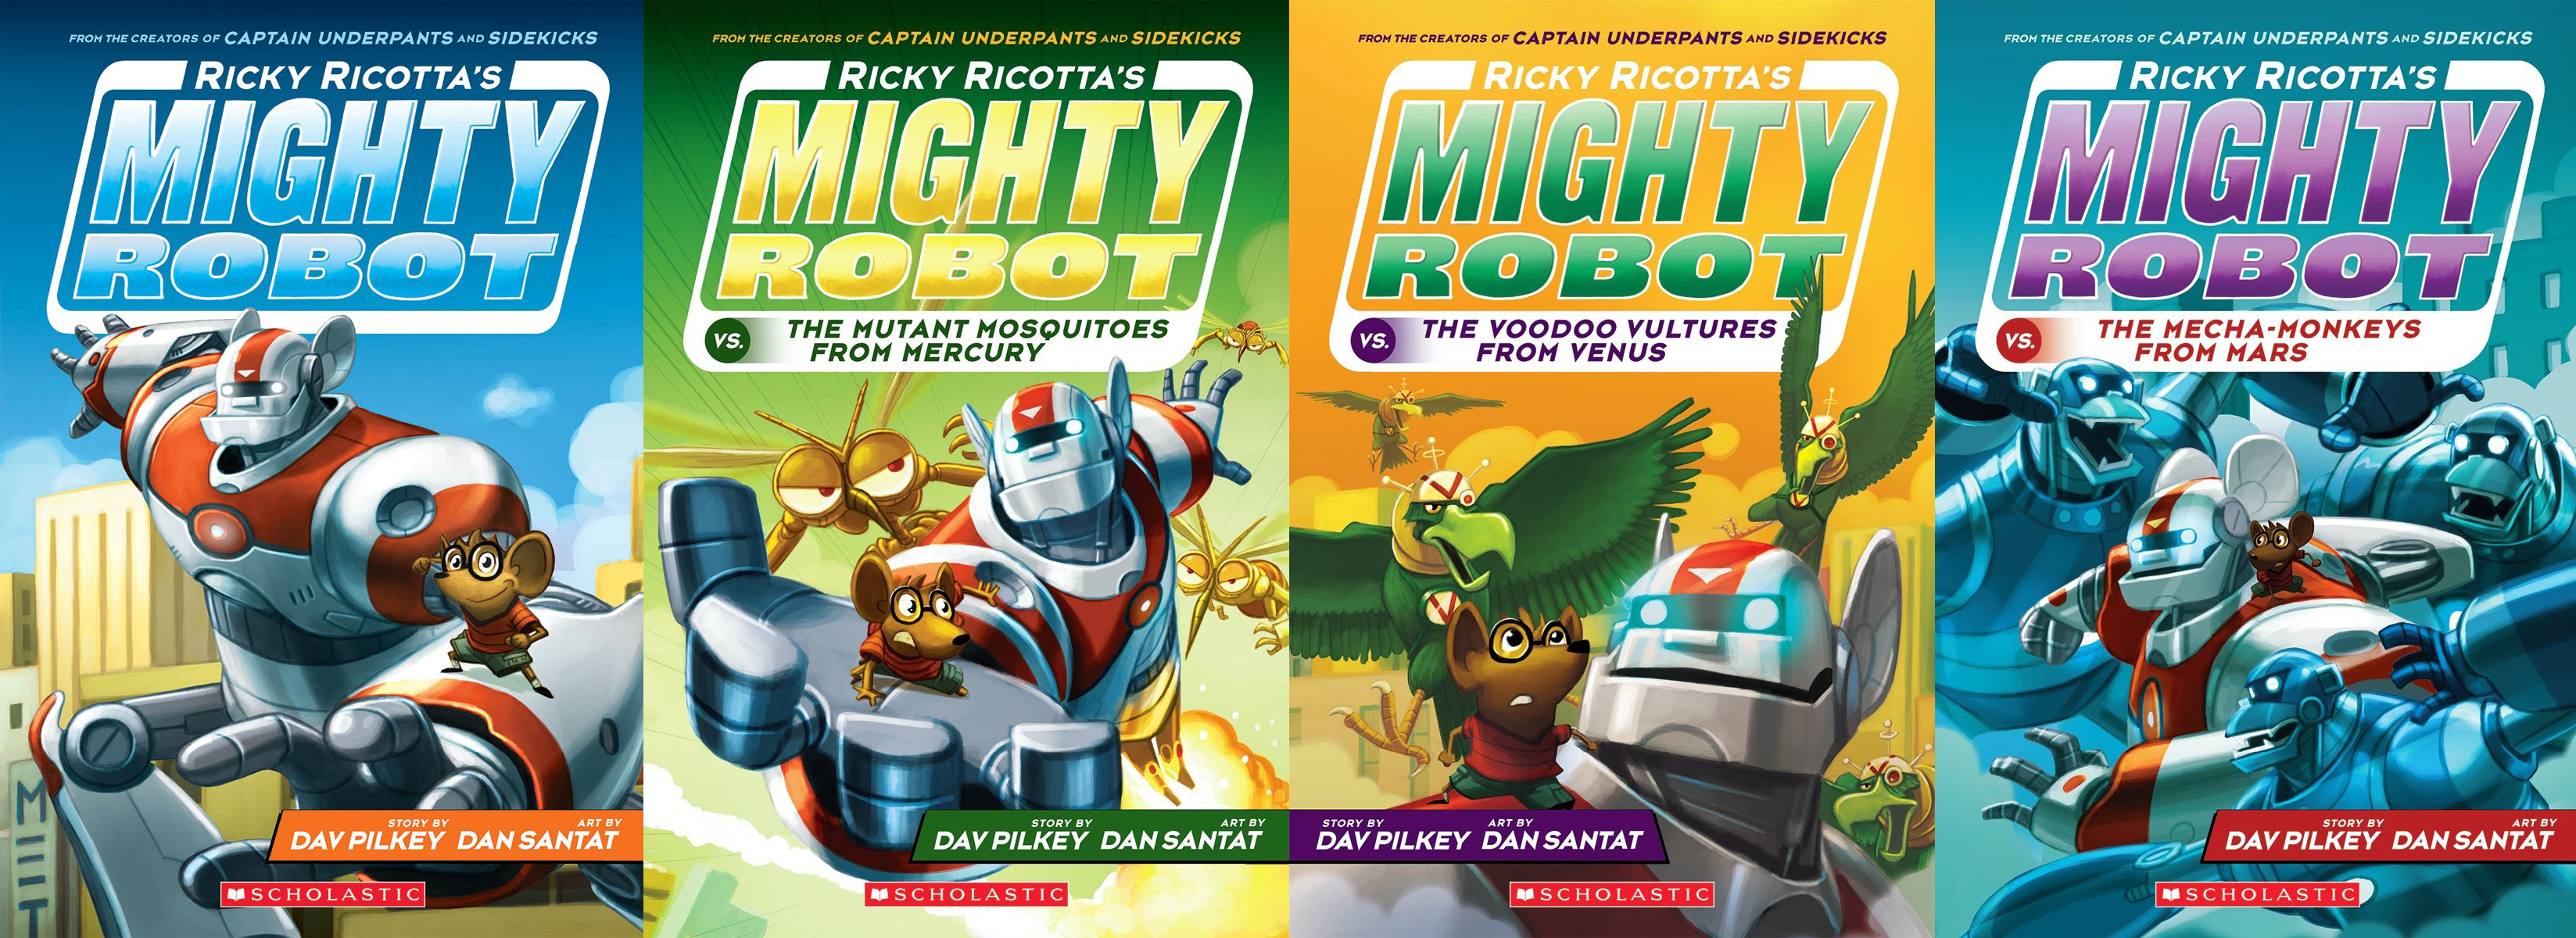 Ricky Ricotta Book Series Amp Mighty Robot Snack